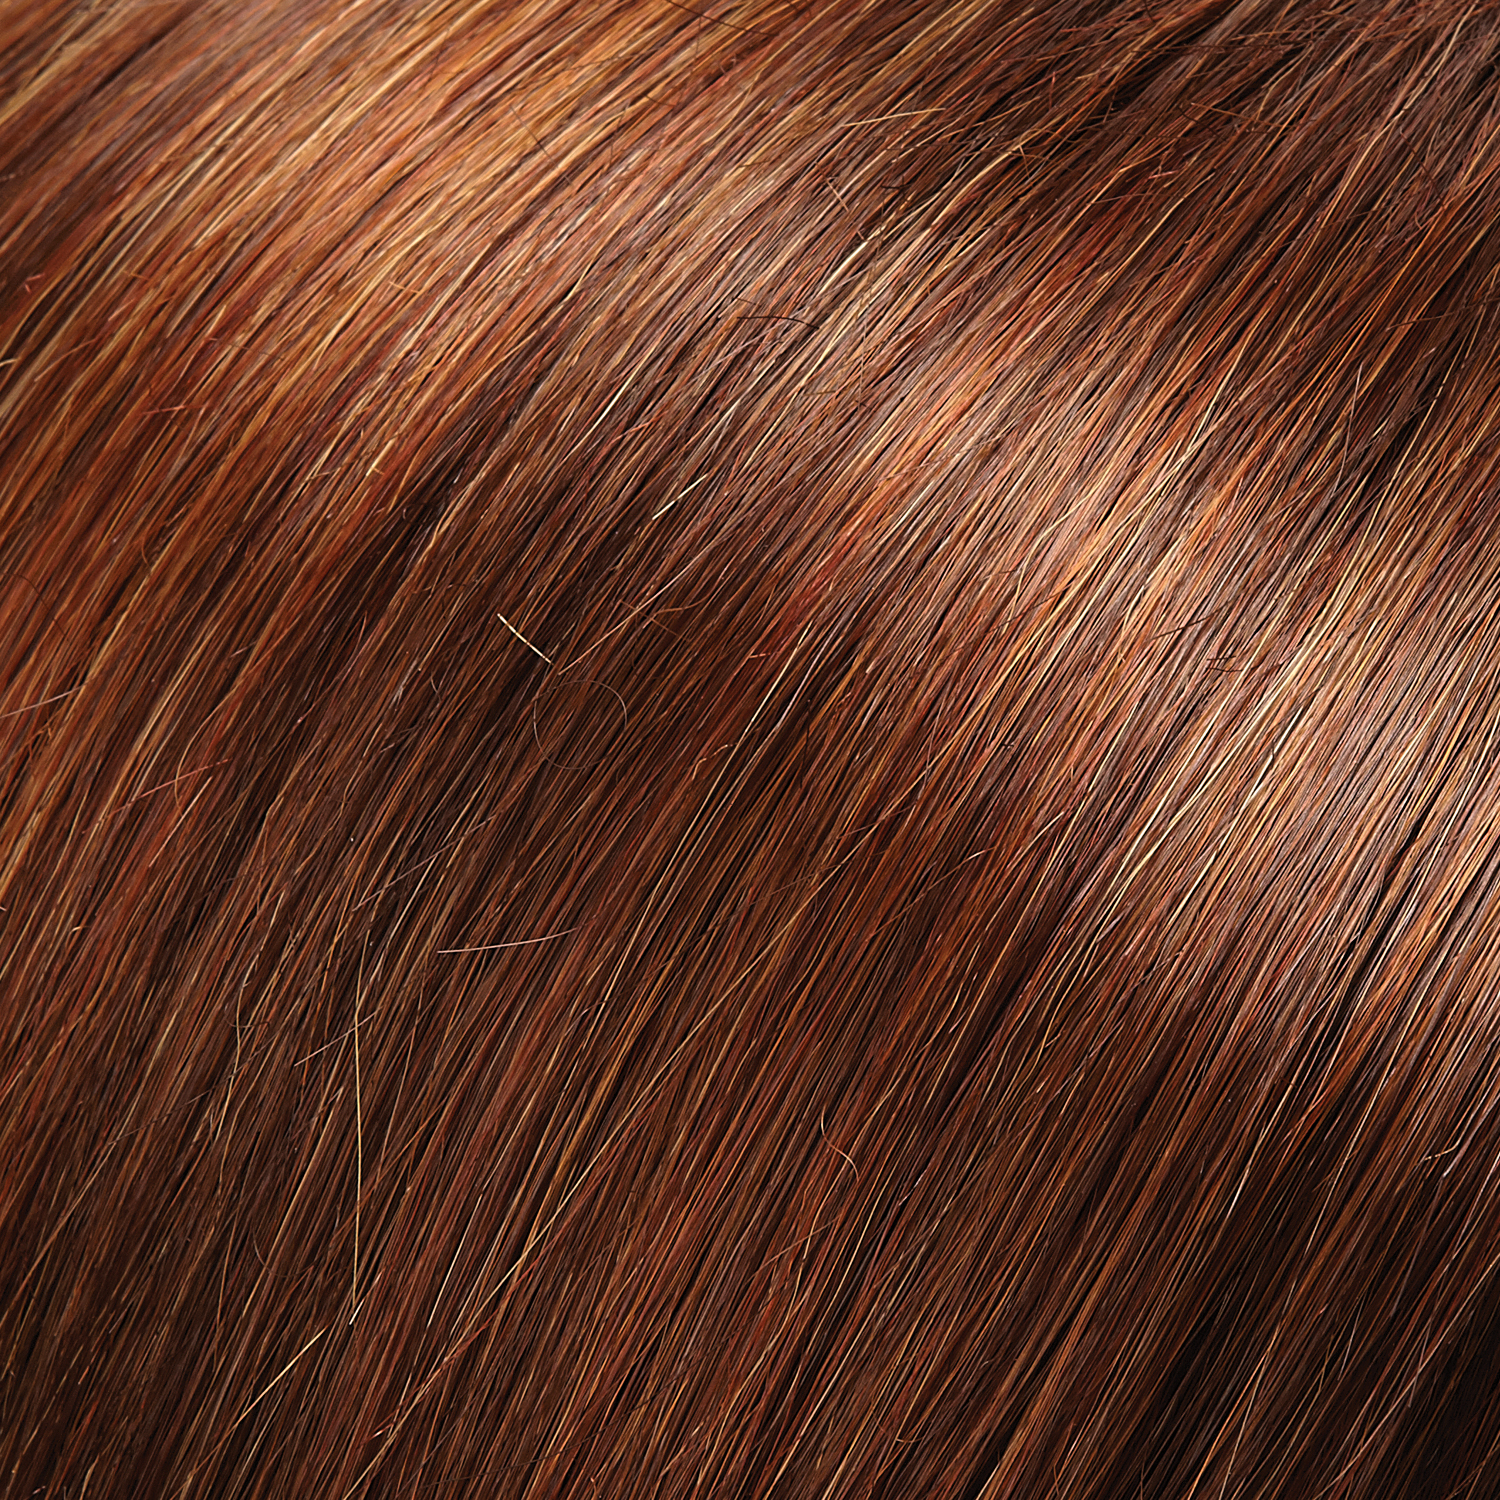 33RH29 - Medium Natural Red with 33% Light Red-Golden Blonde Highlights